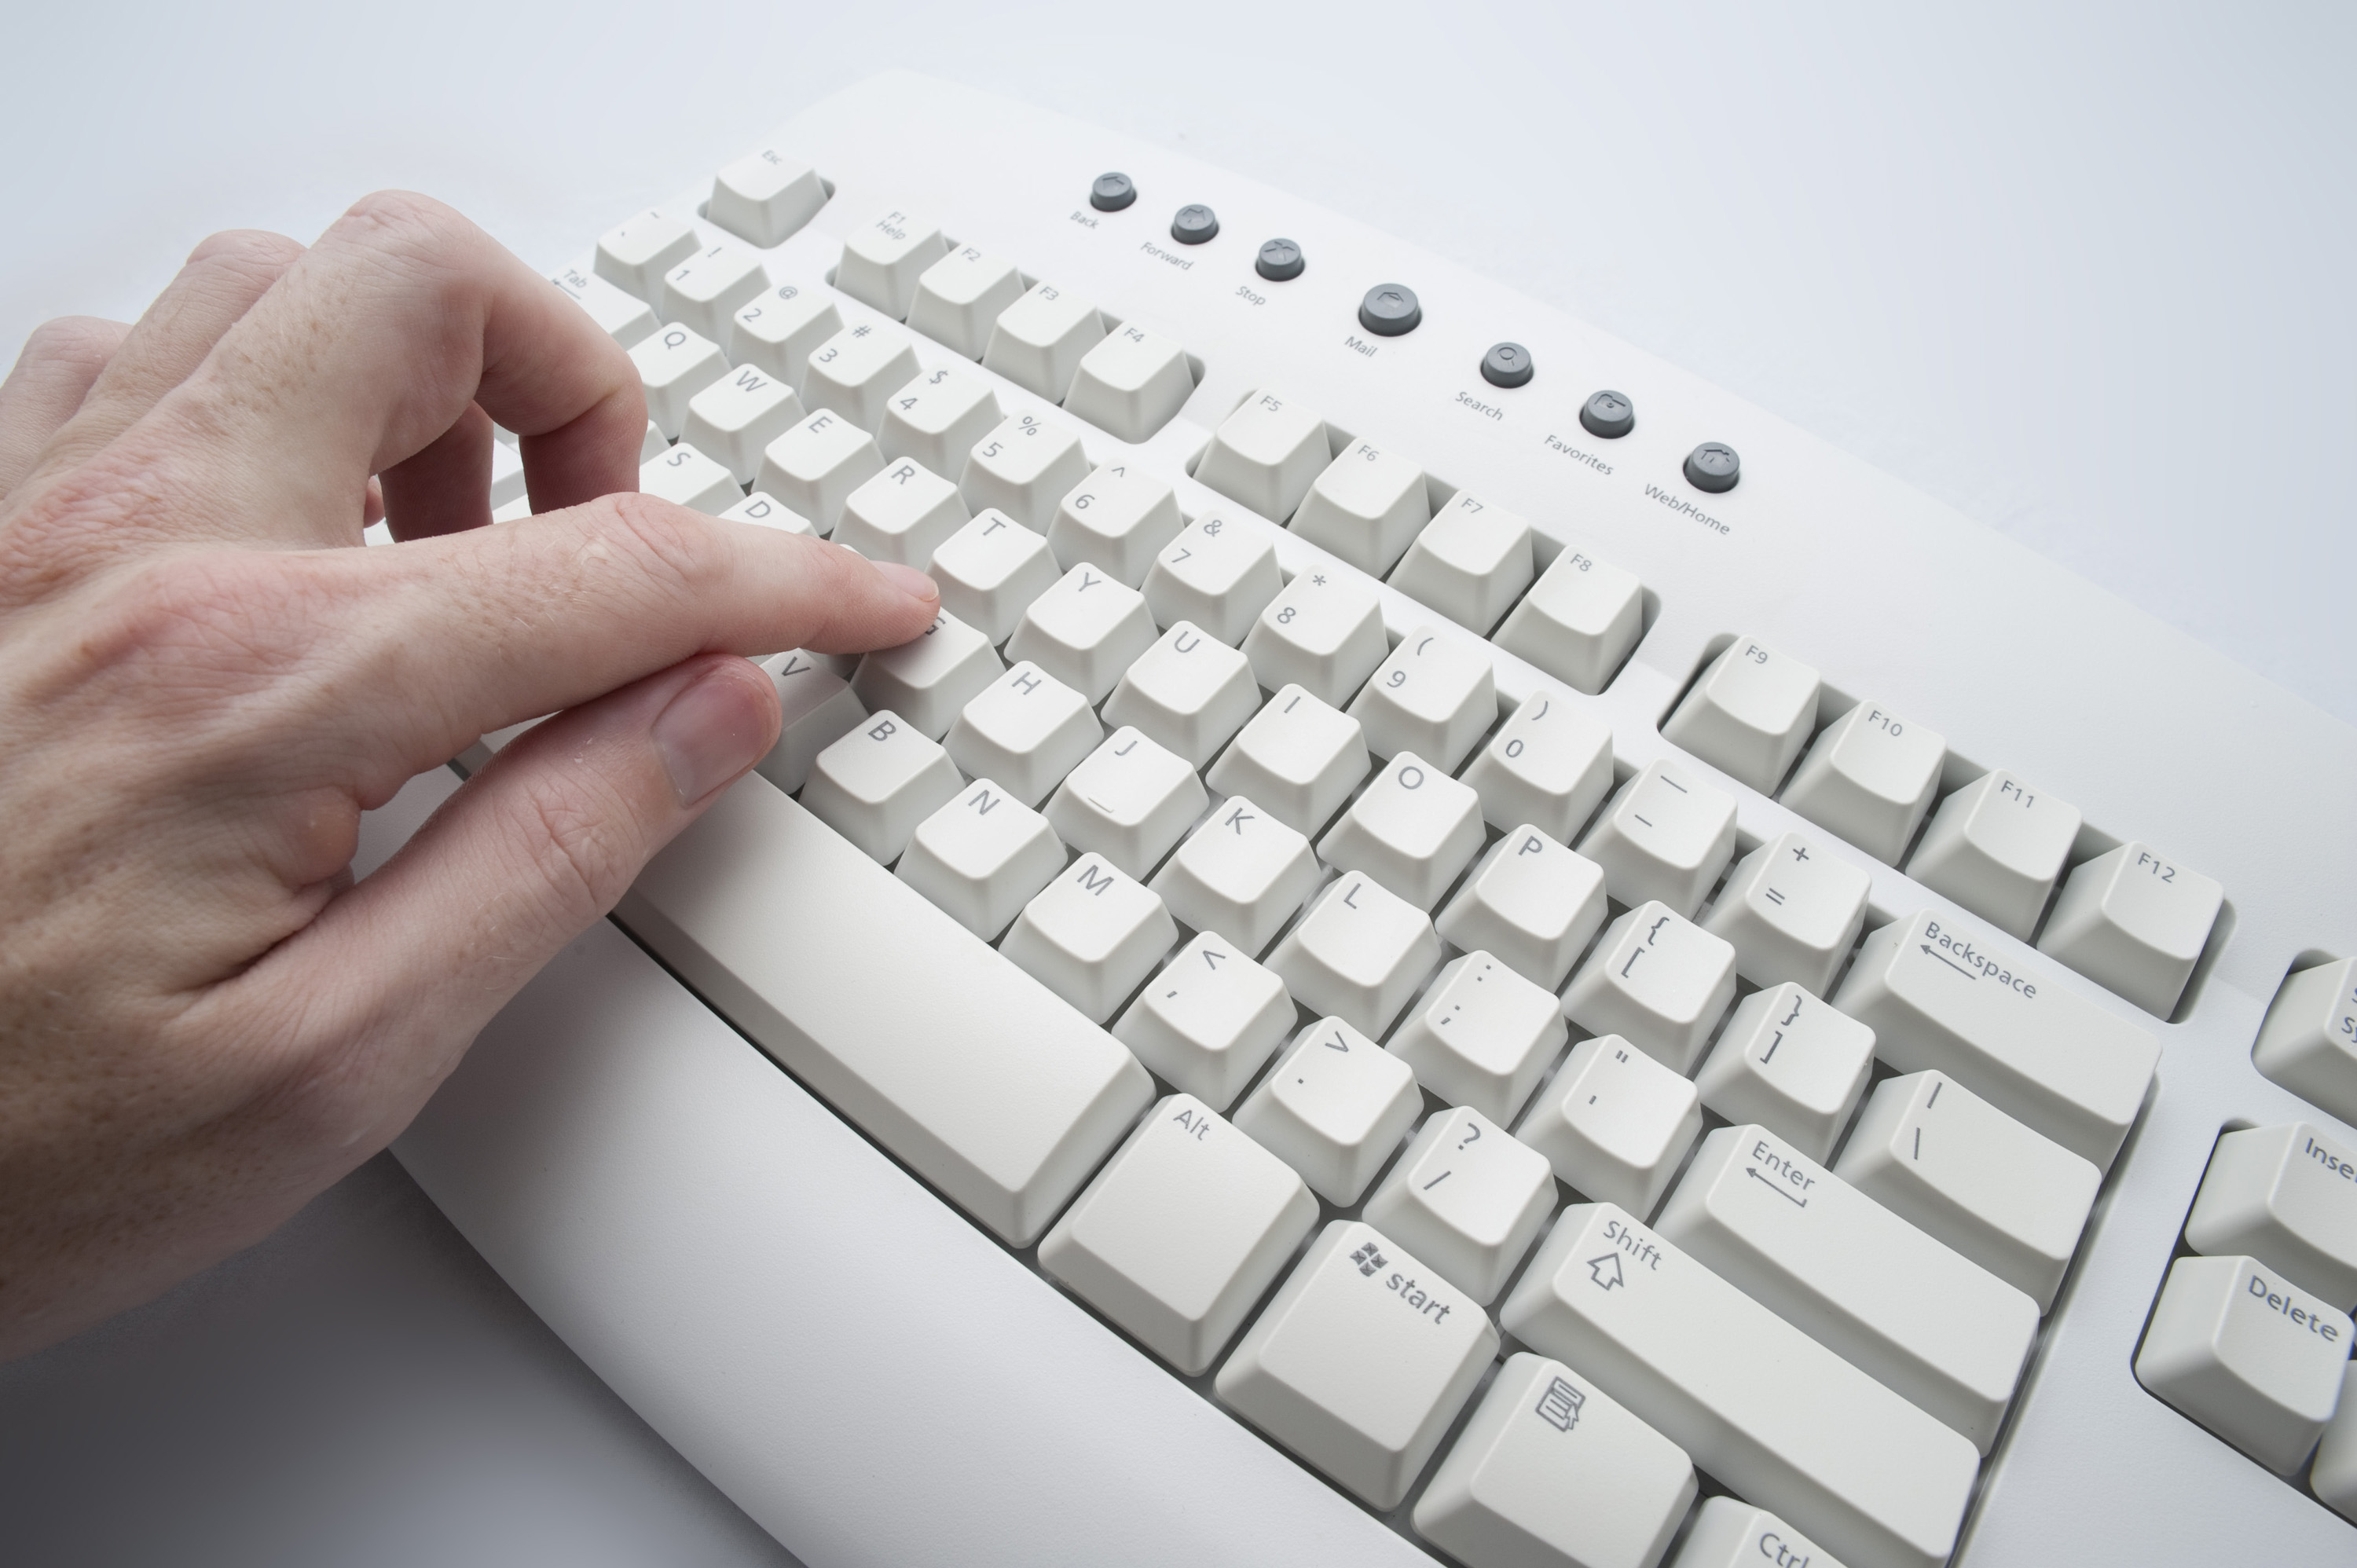 contemporary home based typing jobs uk ornament home decorating